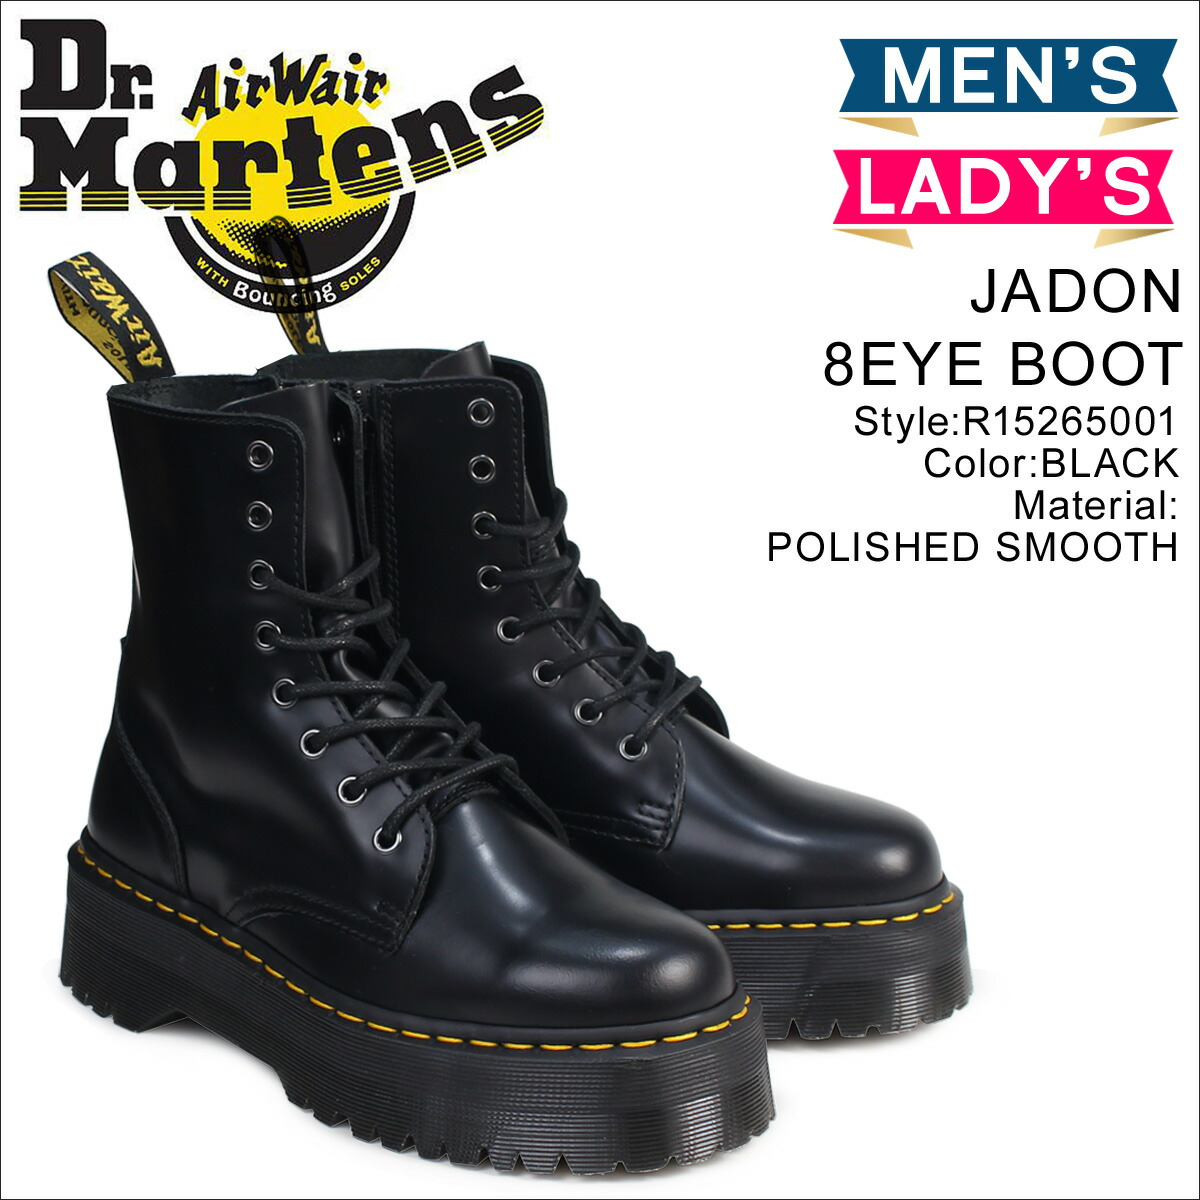 f5e2e31060db Whats up Sports   SOLD OUT  Dr. Martens Dr.Martens 8 hole boots ...